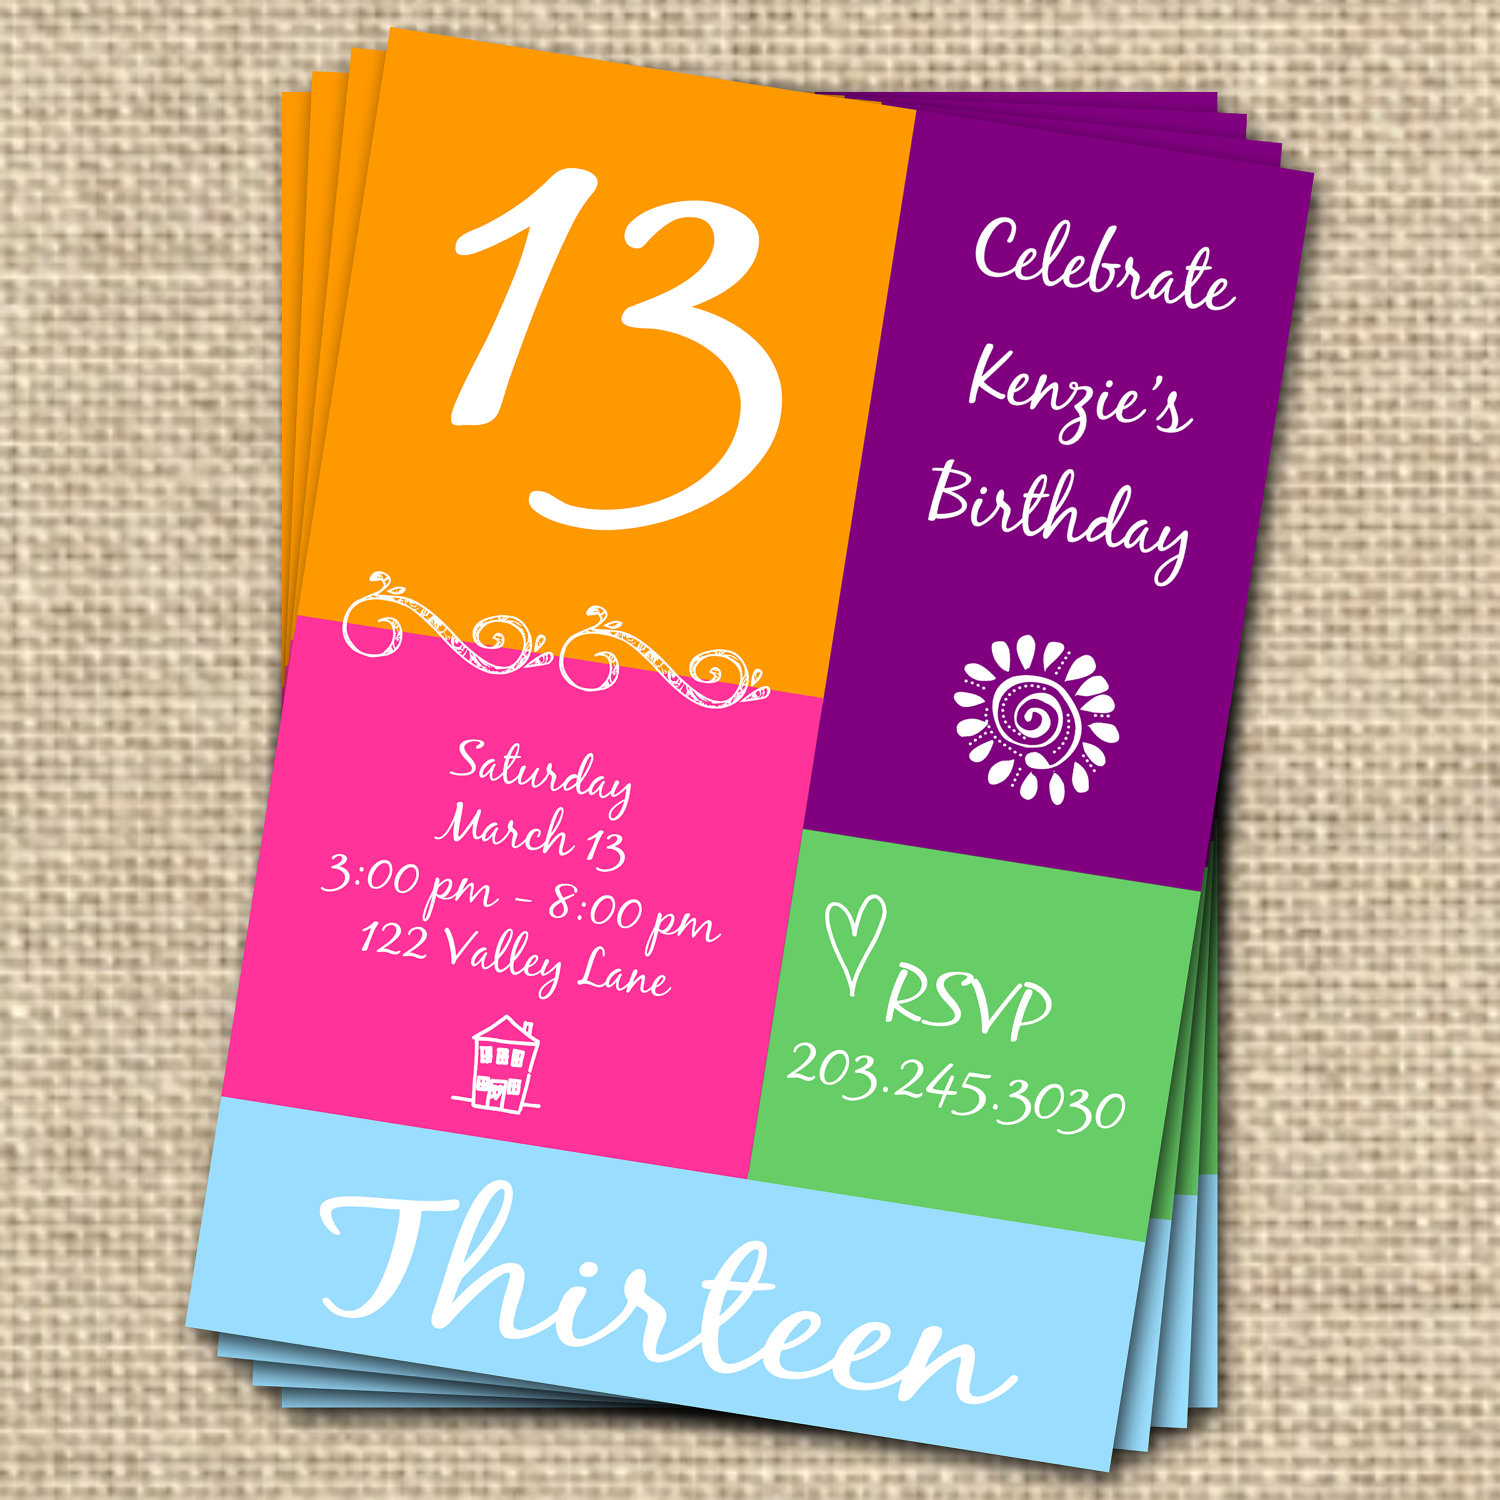 free printable 13th birthday invitation templates ; 13Th-Birthday-Invitation-Templates-Free-and-get-ideas-how-to-make-gorgeous-birthday-Invitation-appearance-1